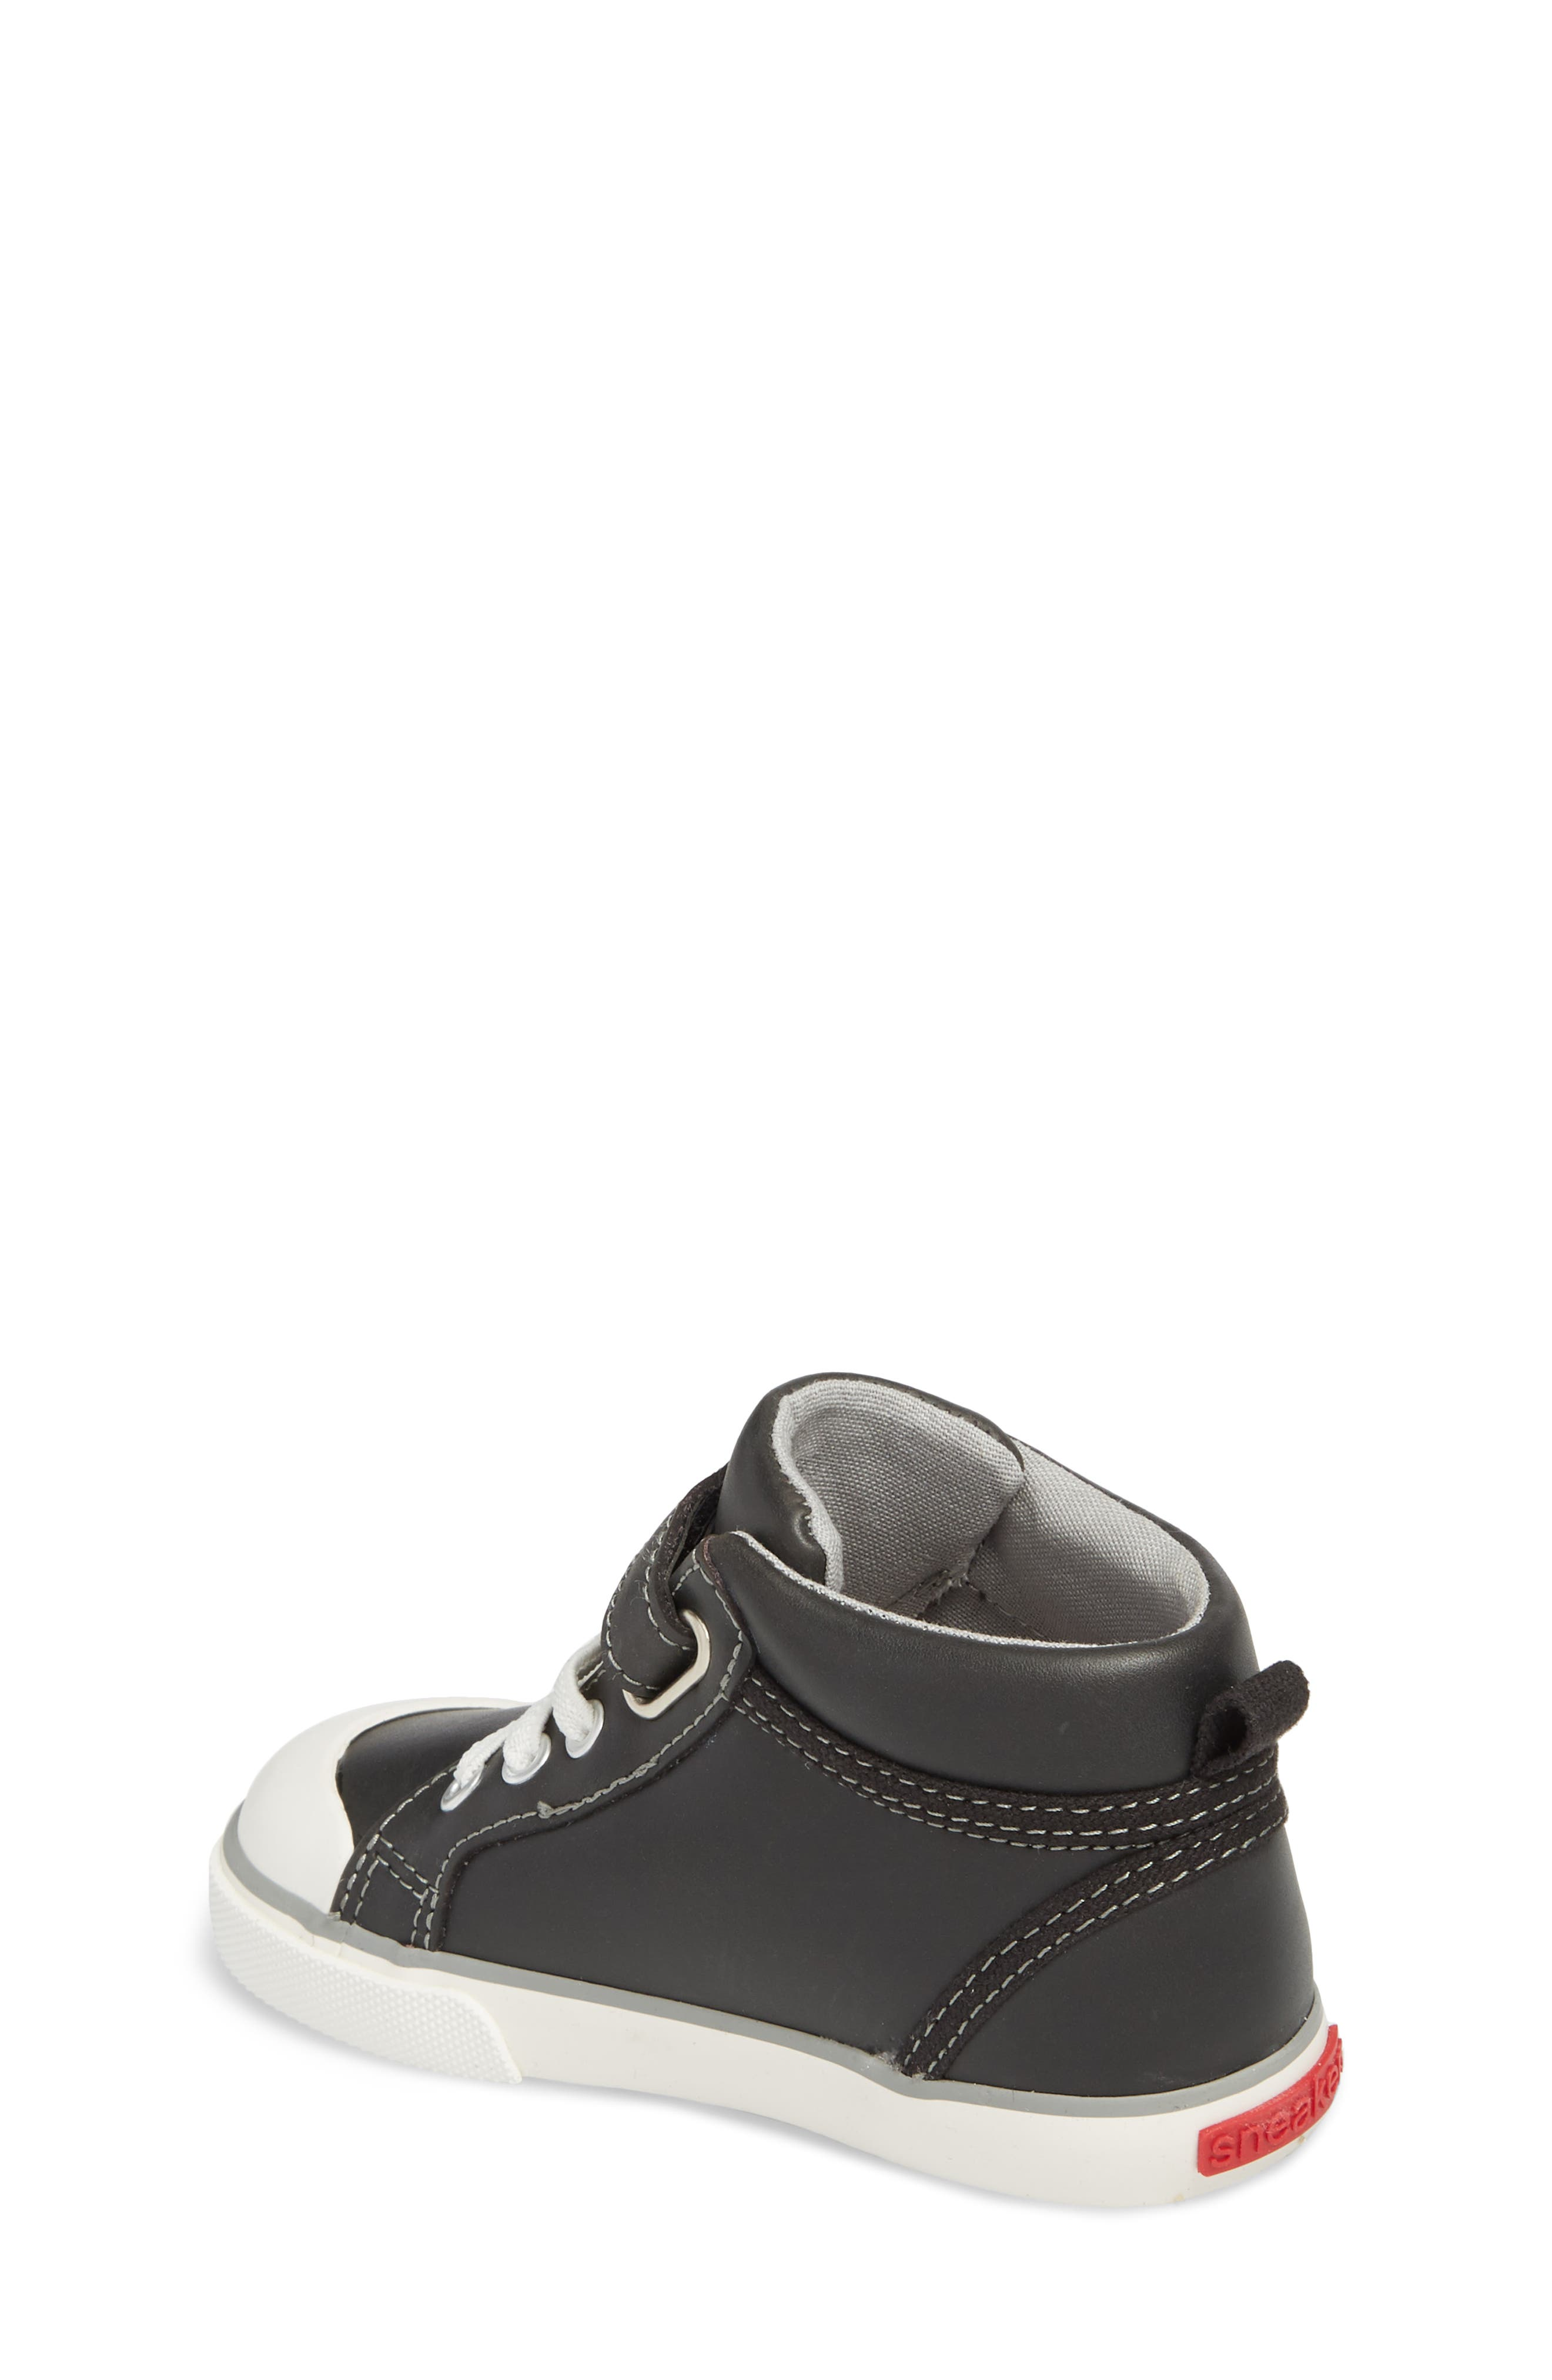 'Peyton' High Top Sneaker,                             Alternate thumbnail 2, color,                             Black Leather